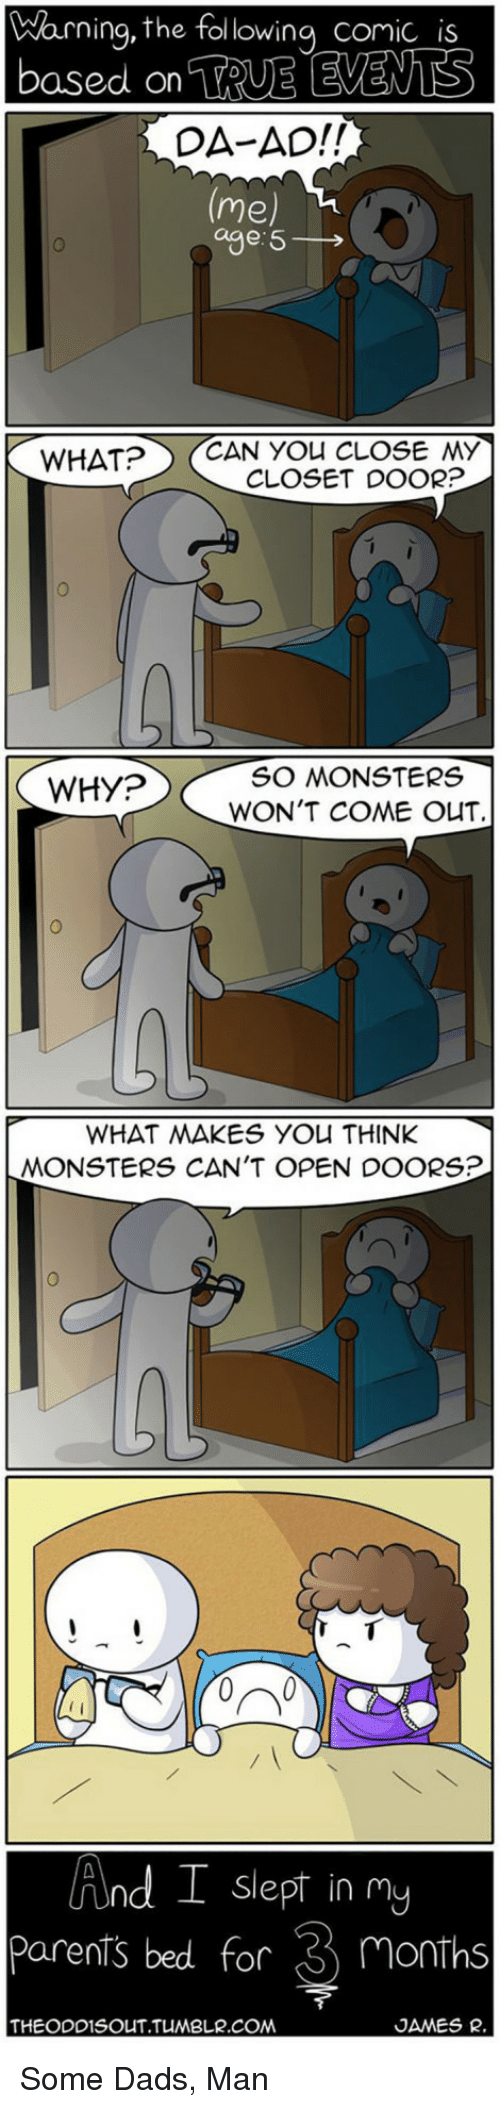 Cant Open: Warning, the following comic is  DA-AD!!  (me)  age: 5  WHAT?CAN YOU CLOSE MY  CLOSET DOOR?  0  WHY?  SO MONSTERS  WON'T COME OuT  WHAT WAKES YOU THINK  MONSTERS CAN'T OPEN DOORS?  0ペ  nd I slept in my  parents bed for 3 months  UUn  THEODDISOUT.TUMBLR.COM  JAMES R. <p>Some Dads, Man</p>